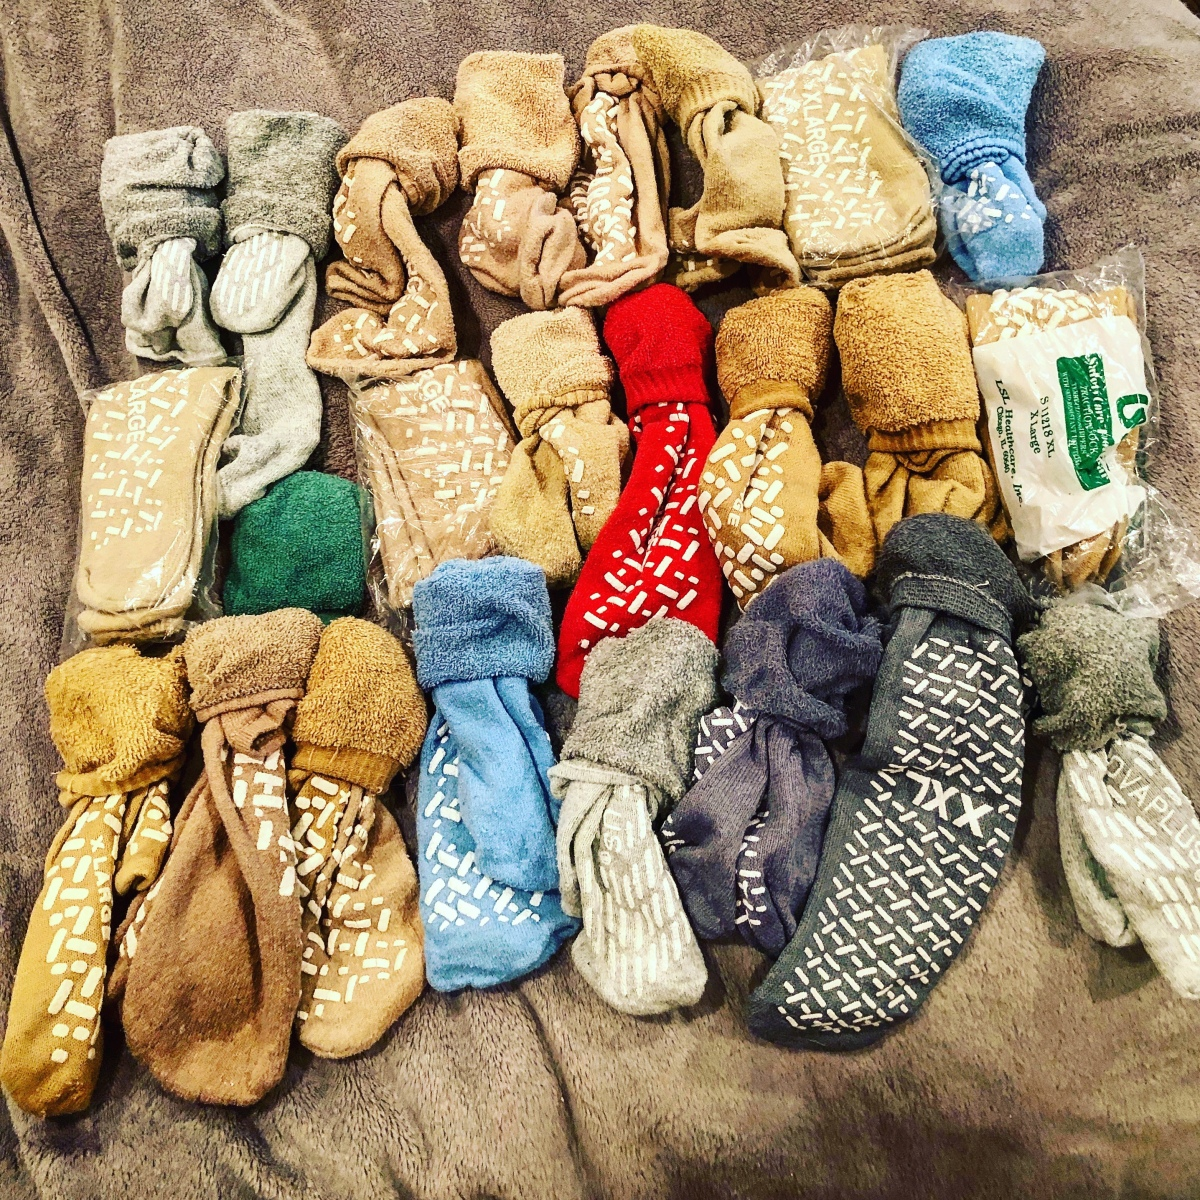 24 Pairs OfSocks